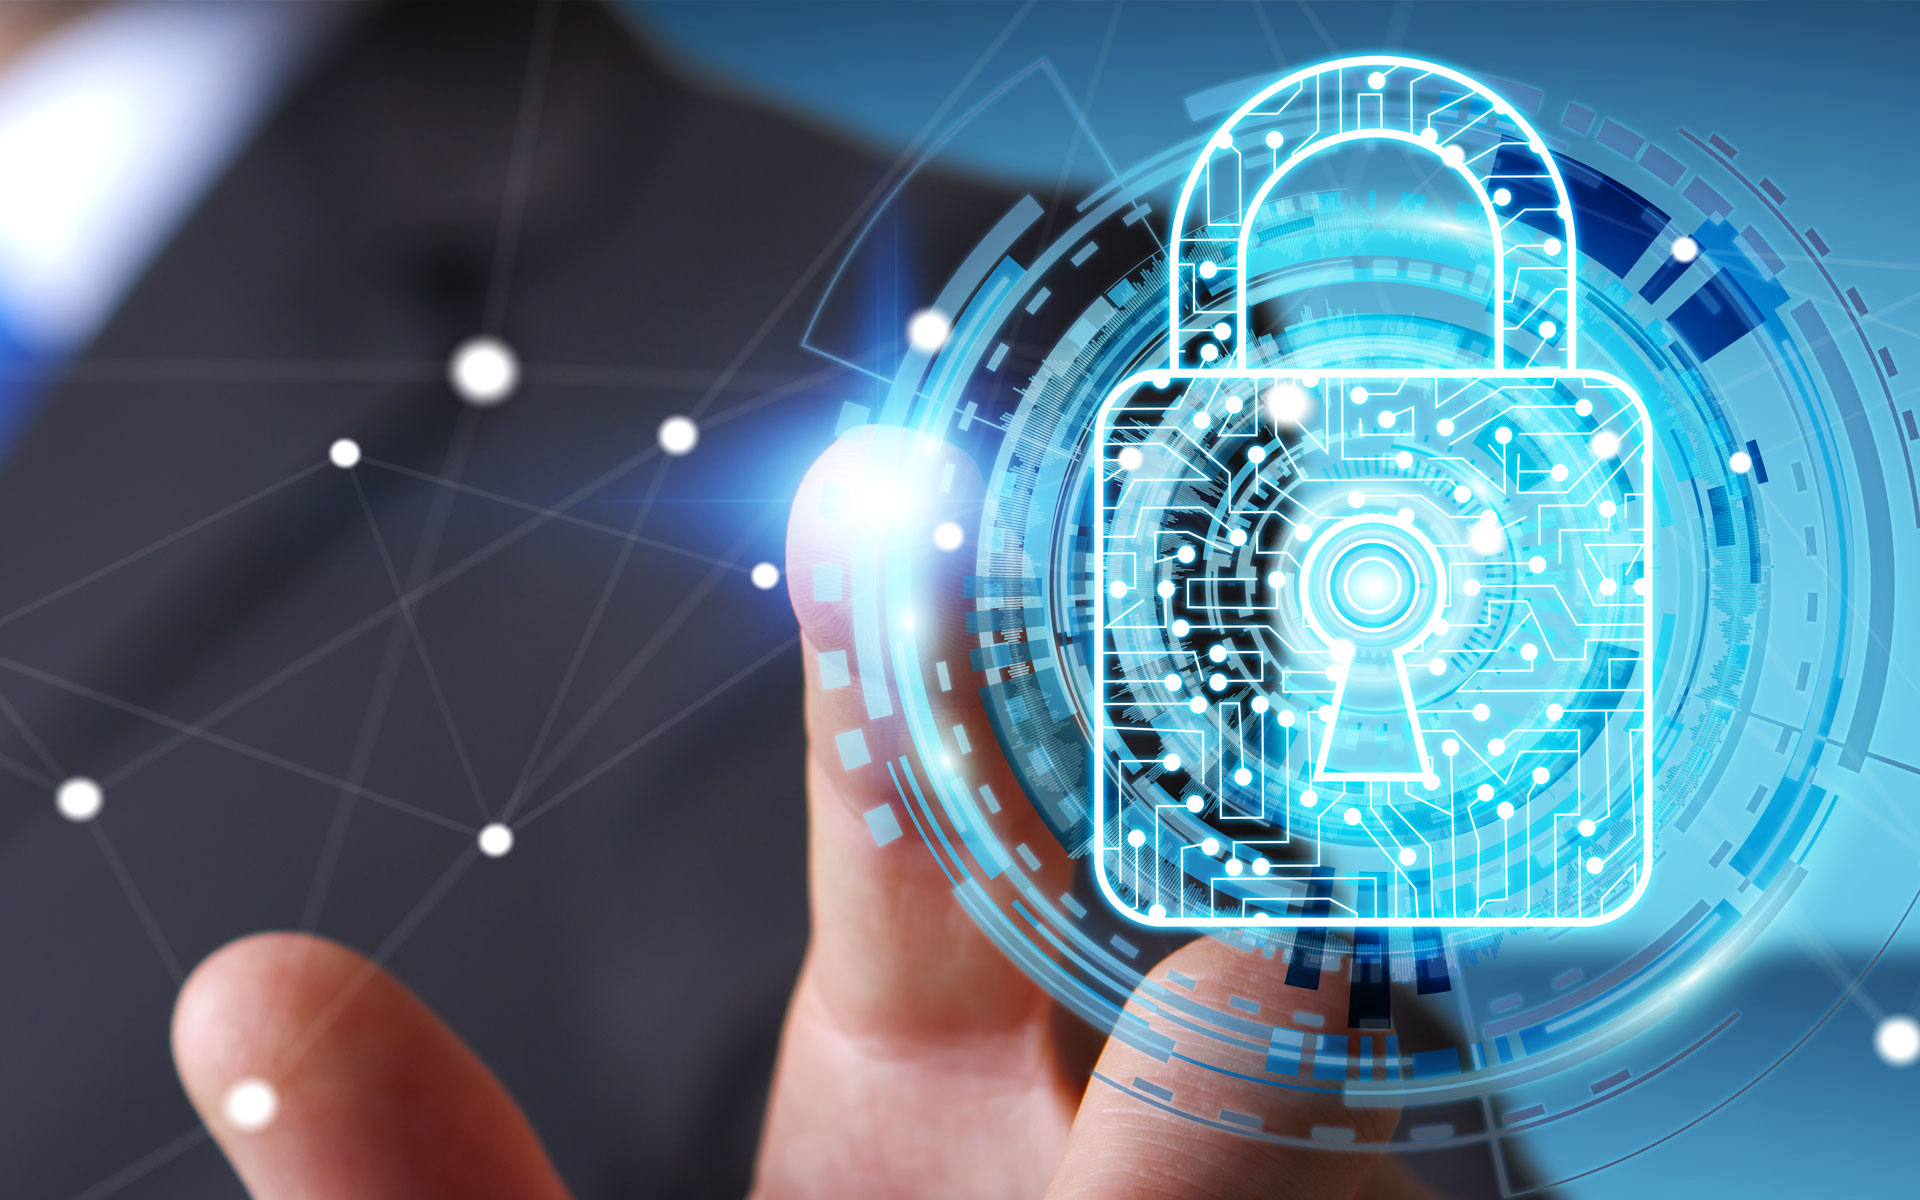 Maltese Financial Regulator Issues Cybersecurity Consultation for Blockchain Industry